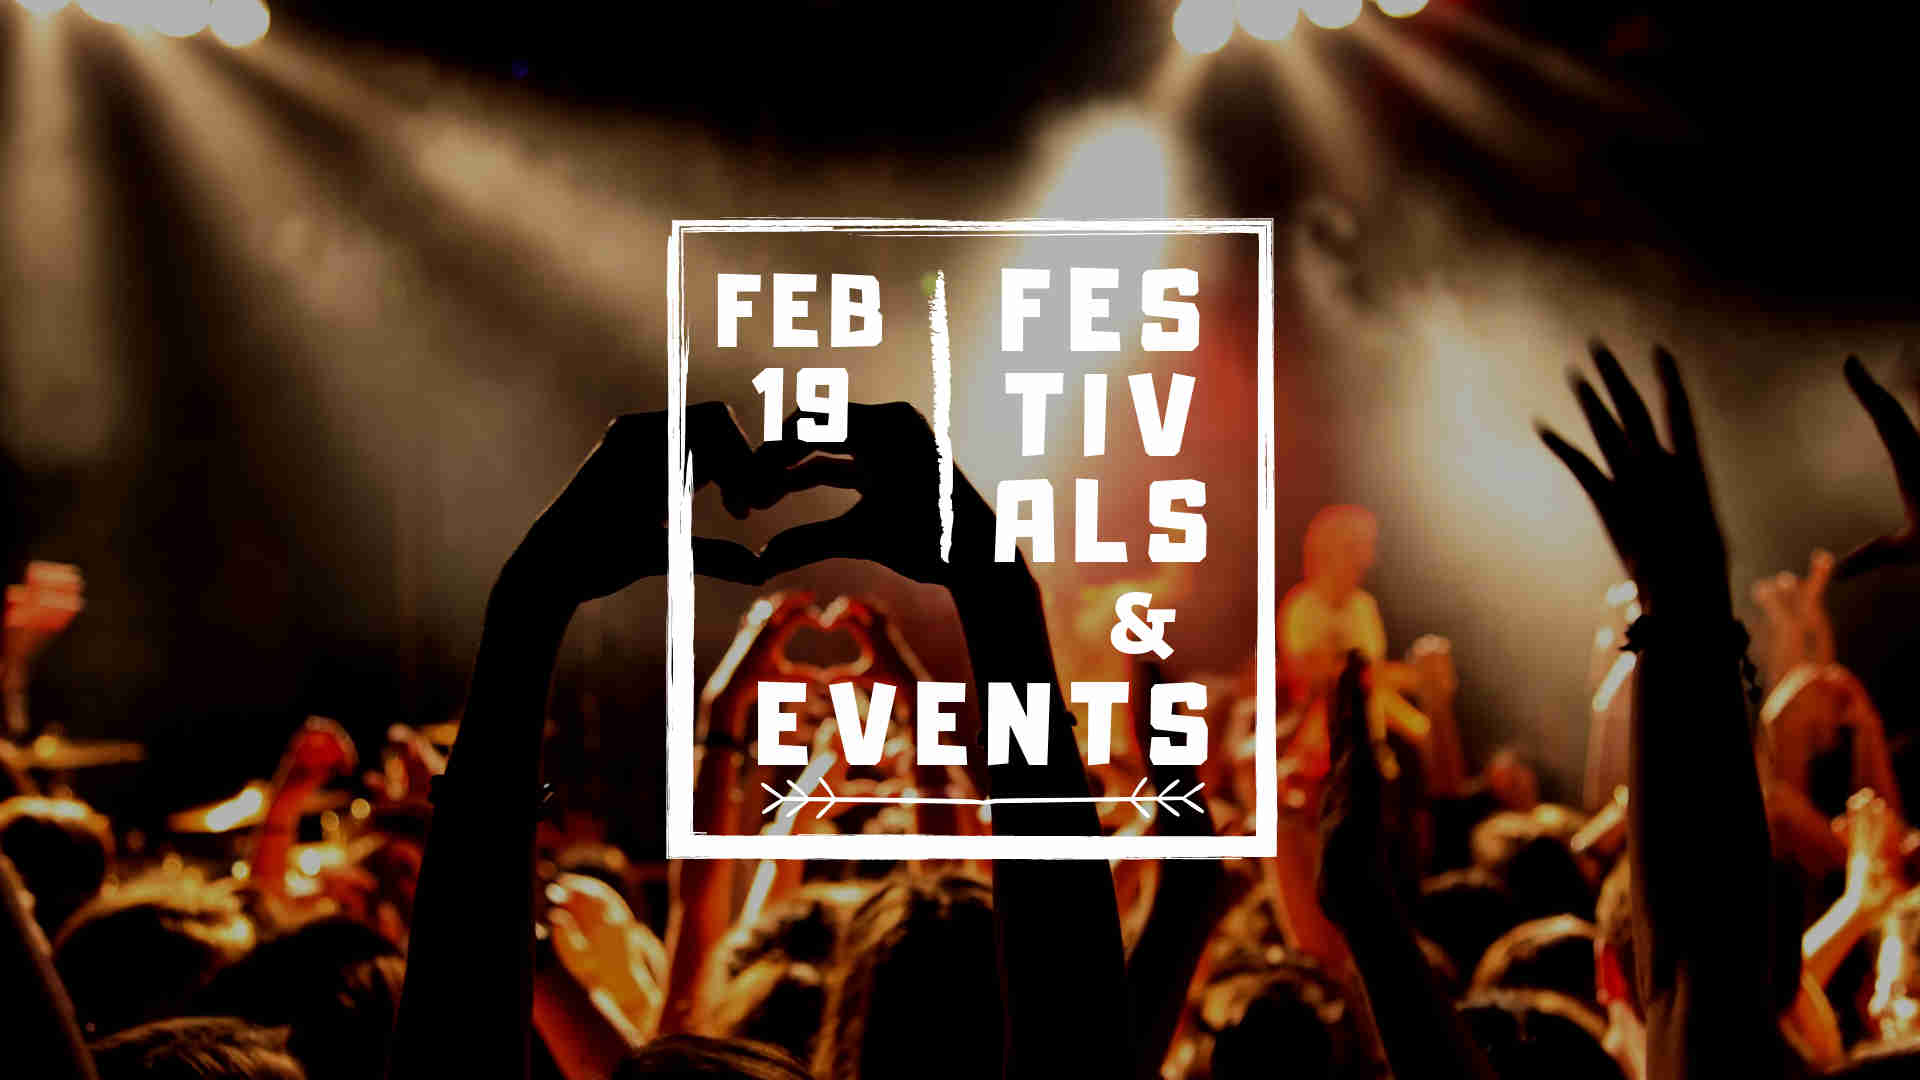 Festivals And Events In European Cities February 2019